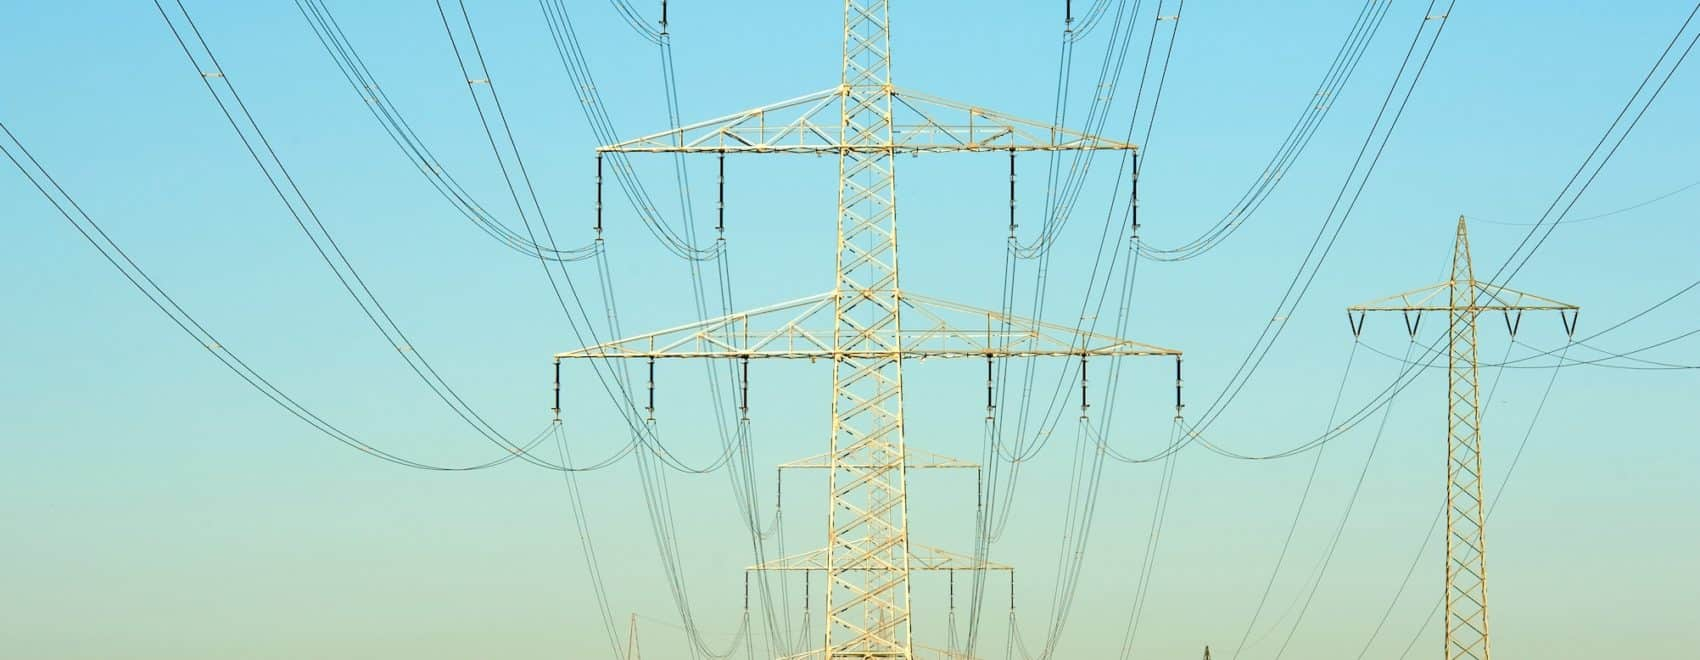 power line inspections cover